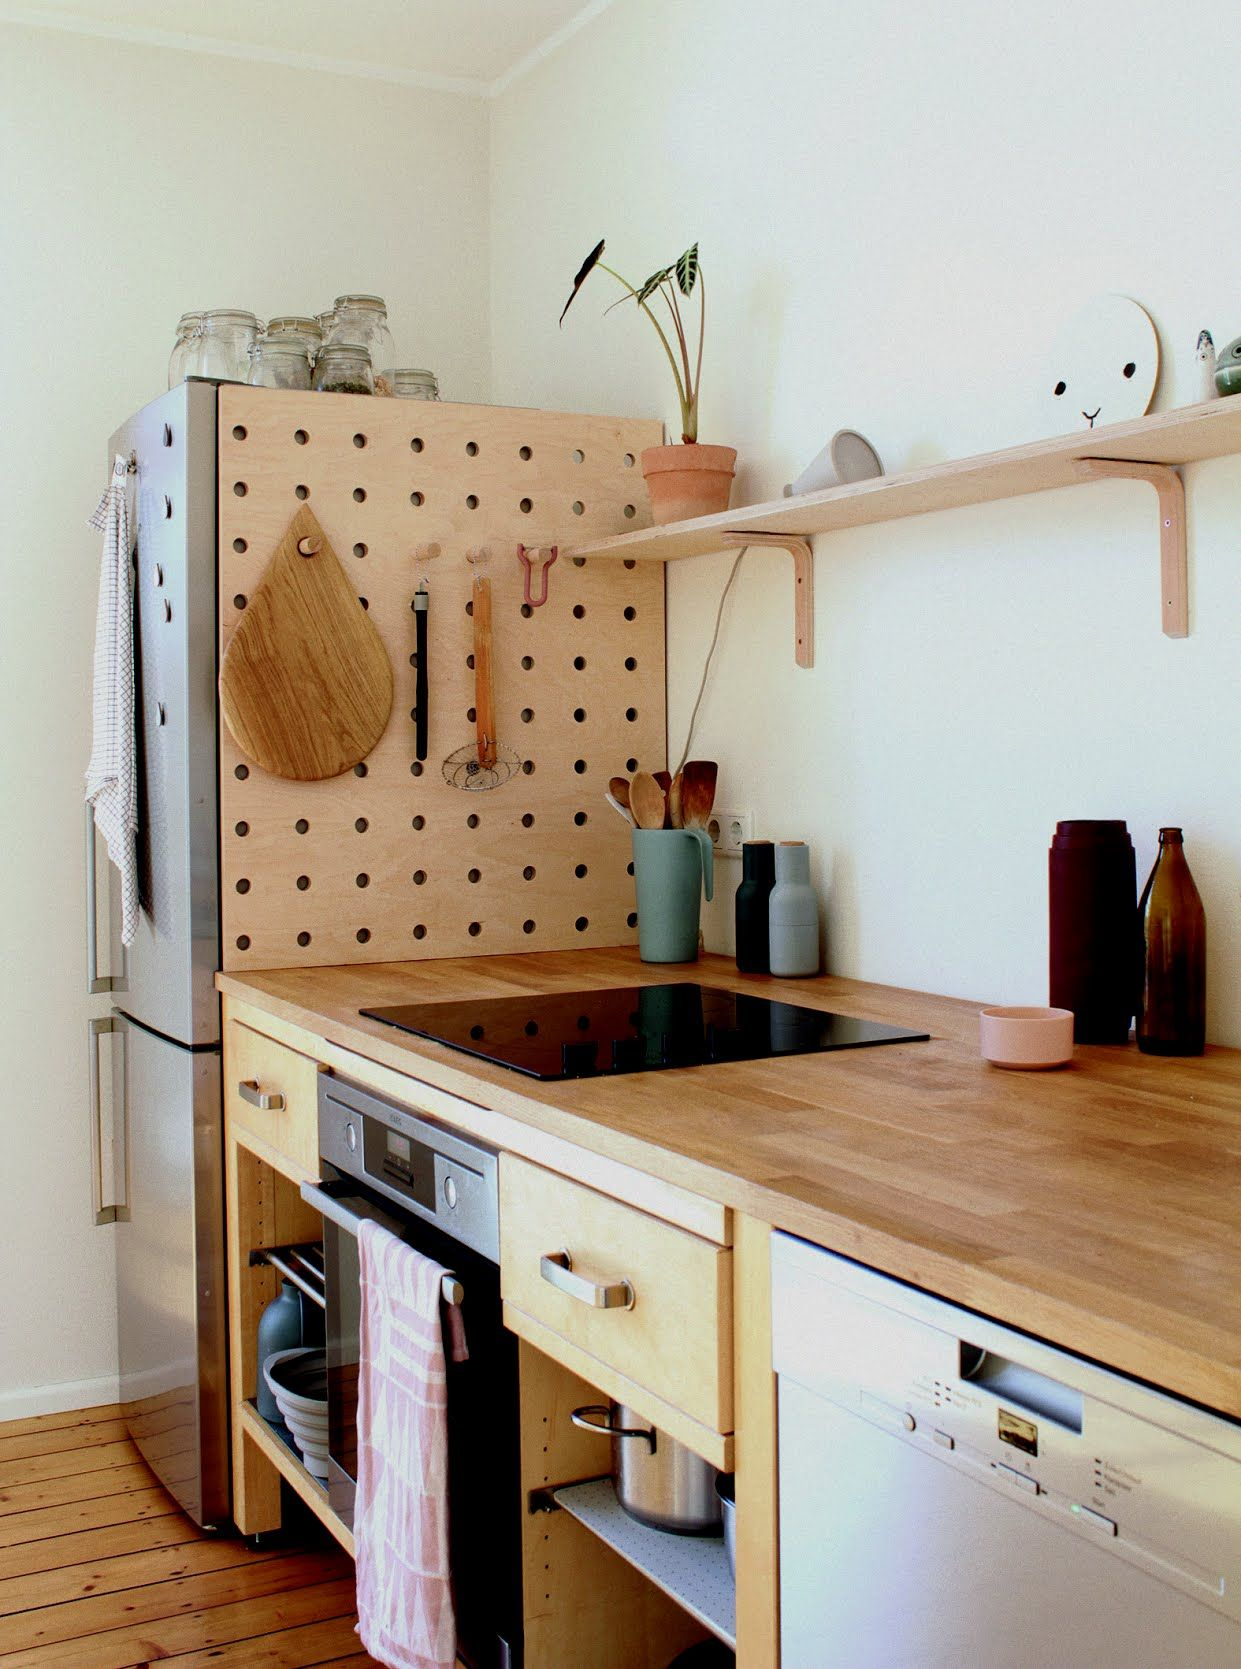 Ikea Küche Dekore Kitchen Of The Week An Artful Kitchen Created From Reclaimed Ikea